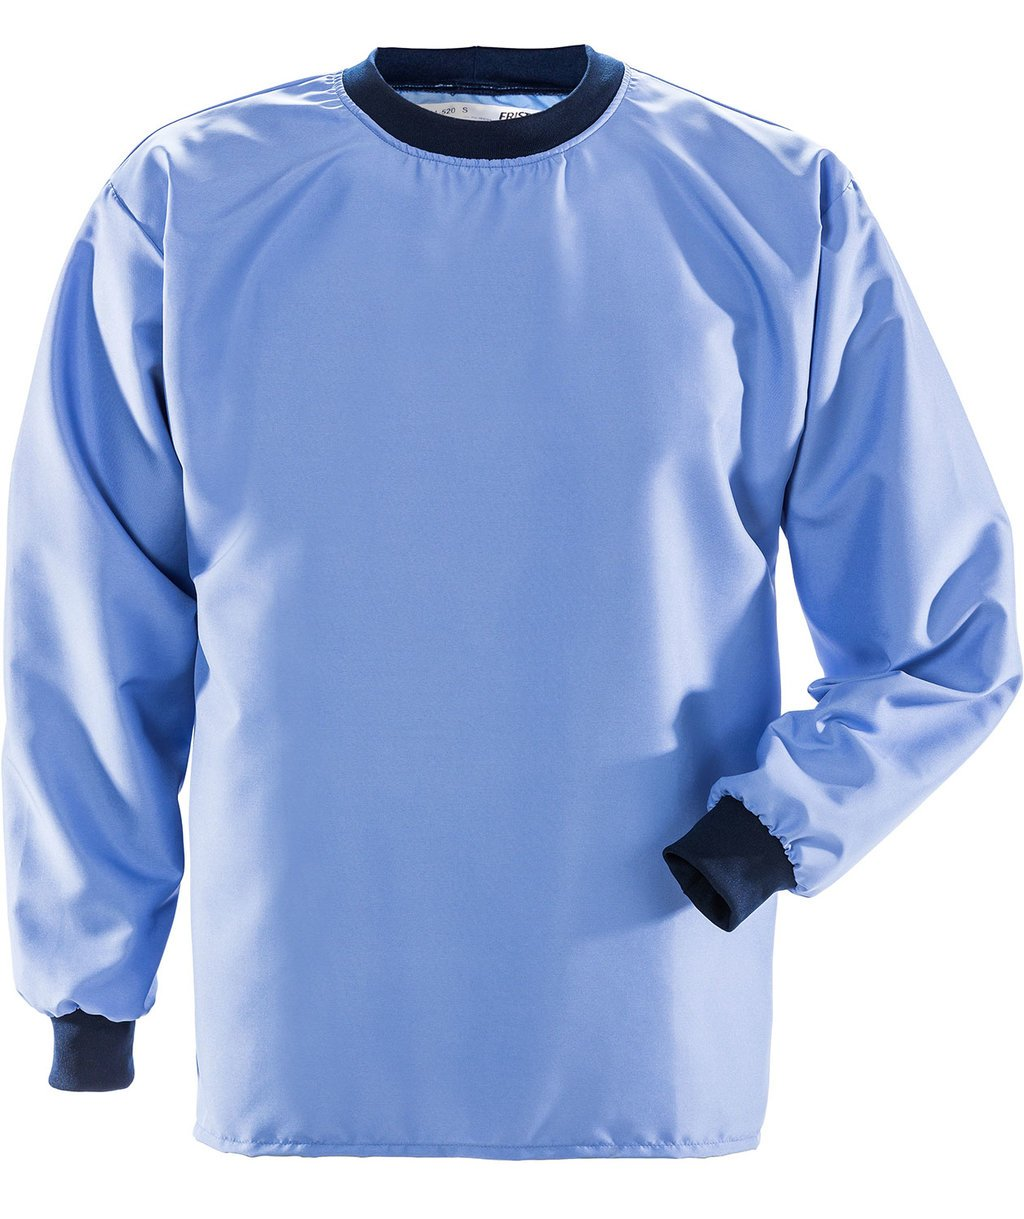 Fristads Cleanroom long-sleeved T-shirt 7R014, Middleblue